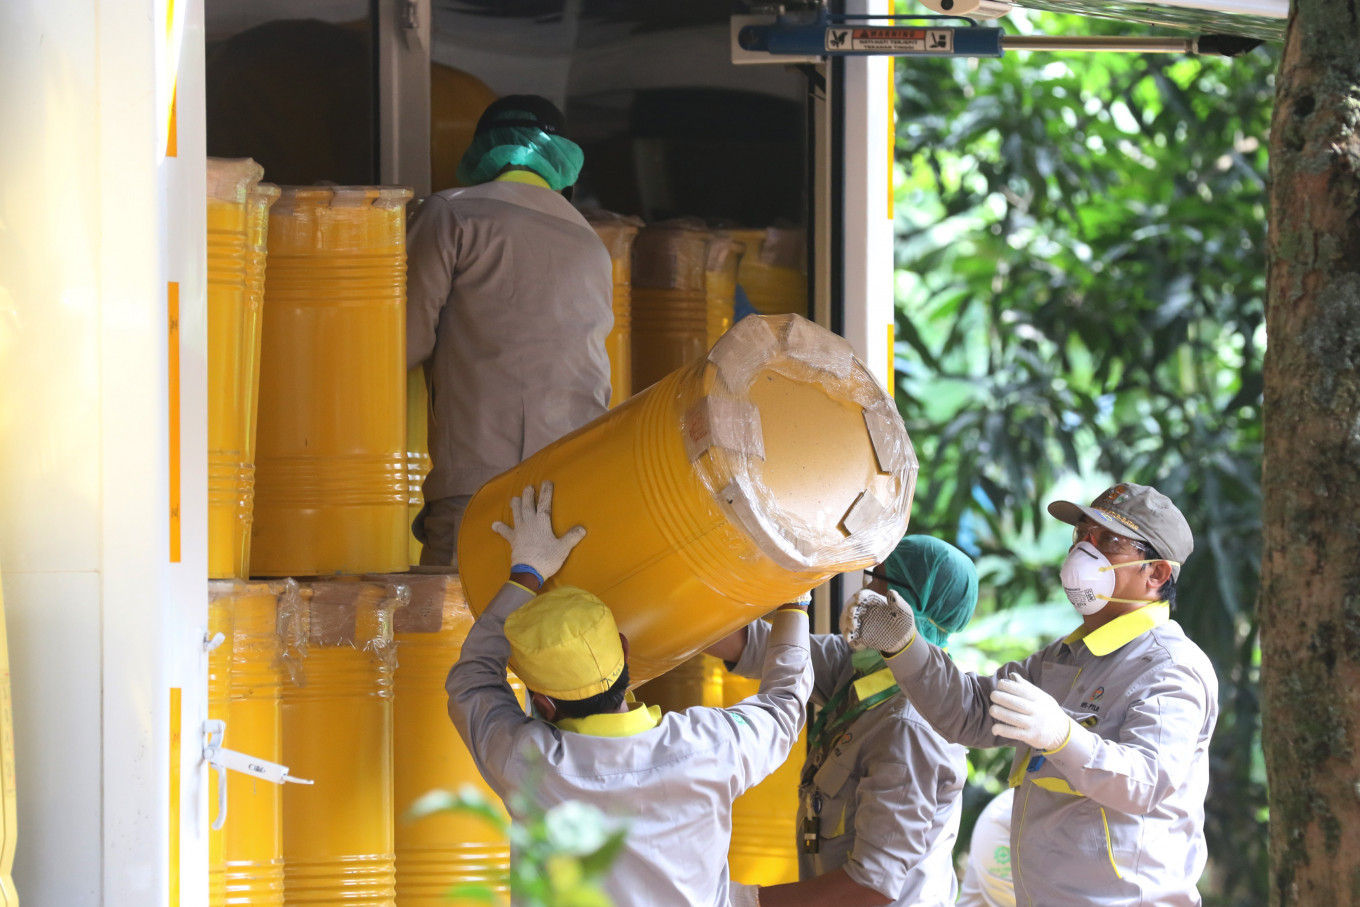 More radioactive substances found at South Tangerang housing complex